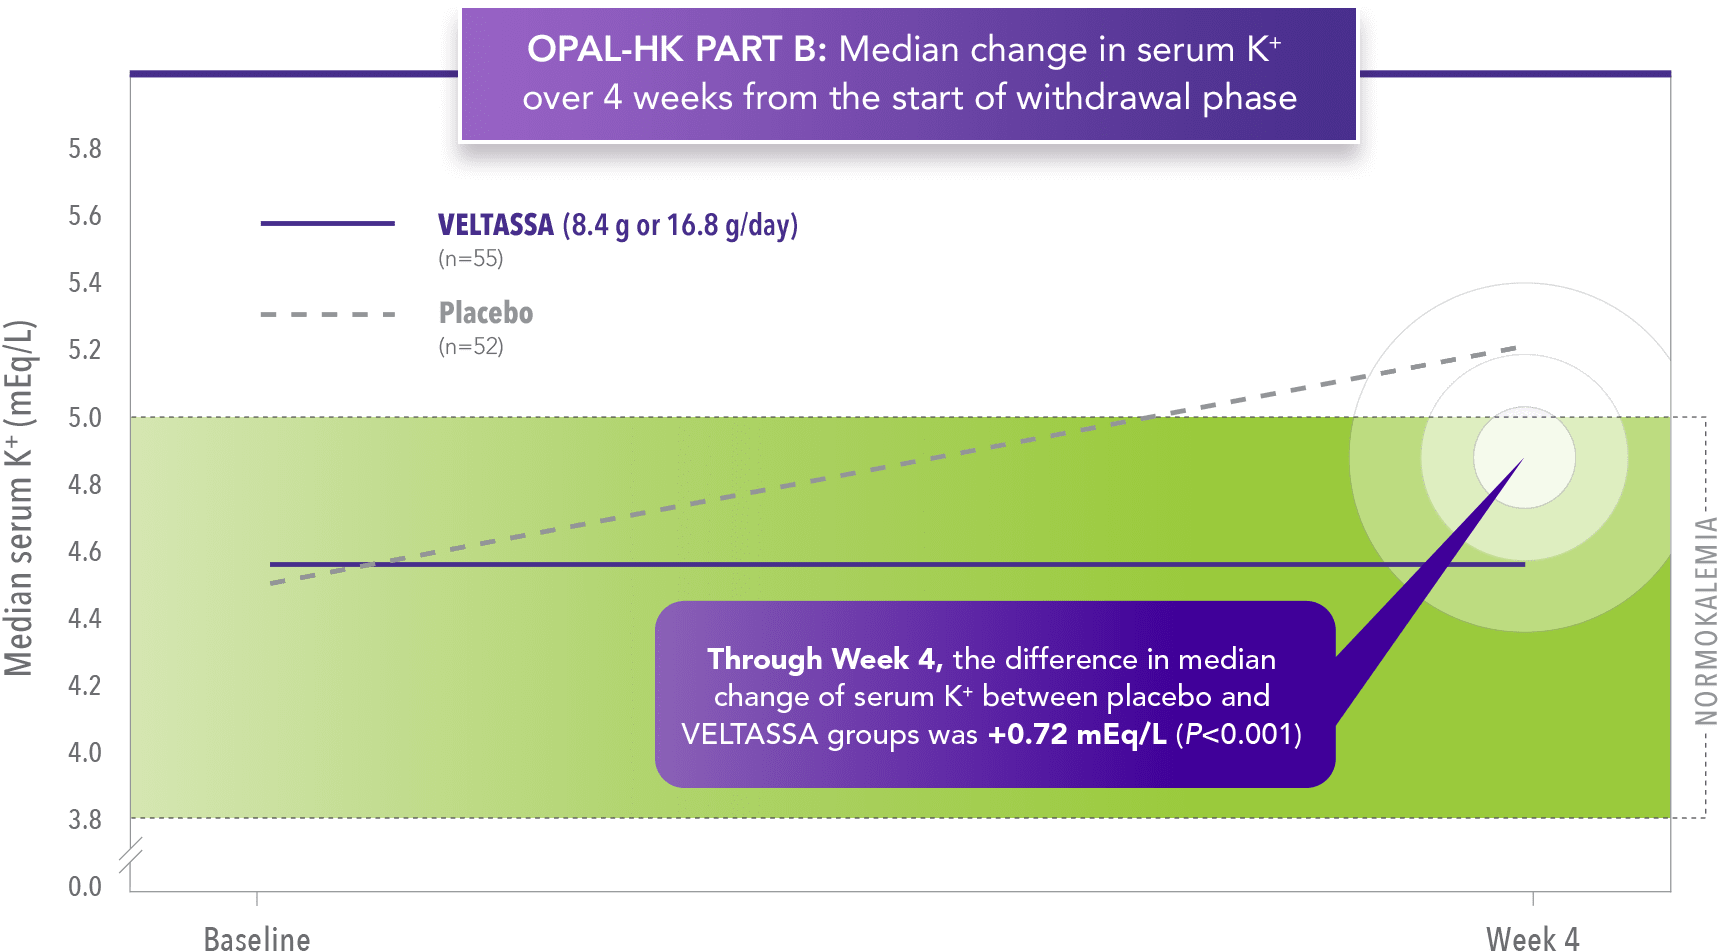 VELTASSA (patiromer) efficacy - Mean serum K⁺ (potassium) at 4 weeks